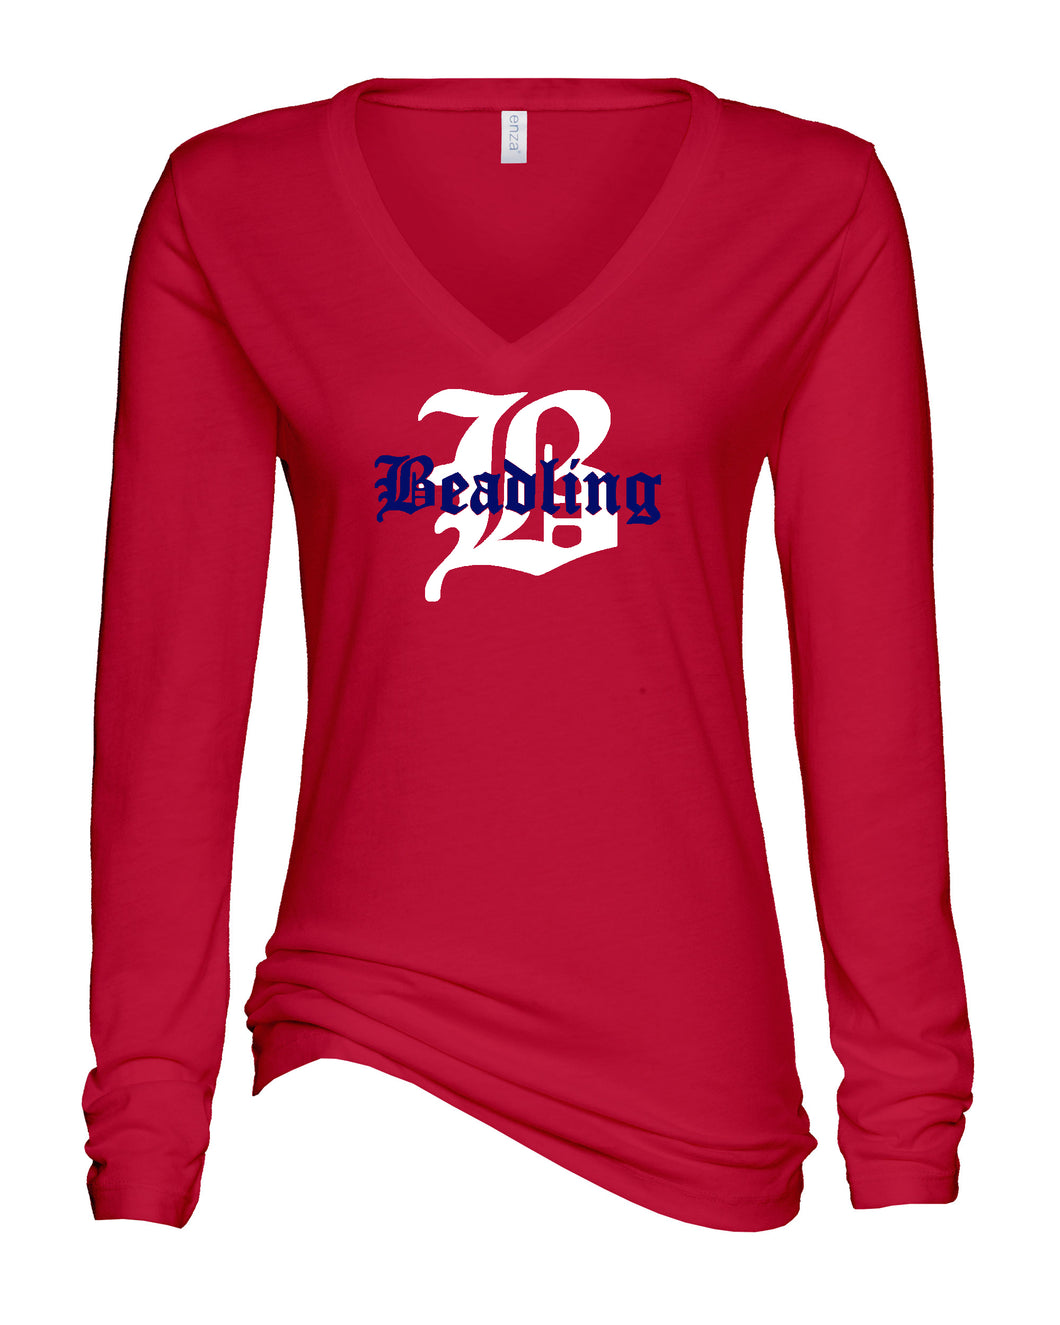 Ladies Long Sleeve V-Neck Shirt featuring the